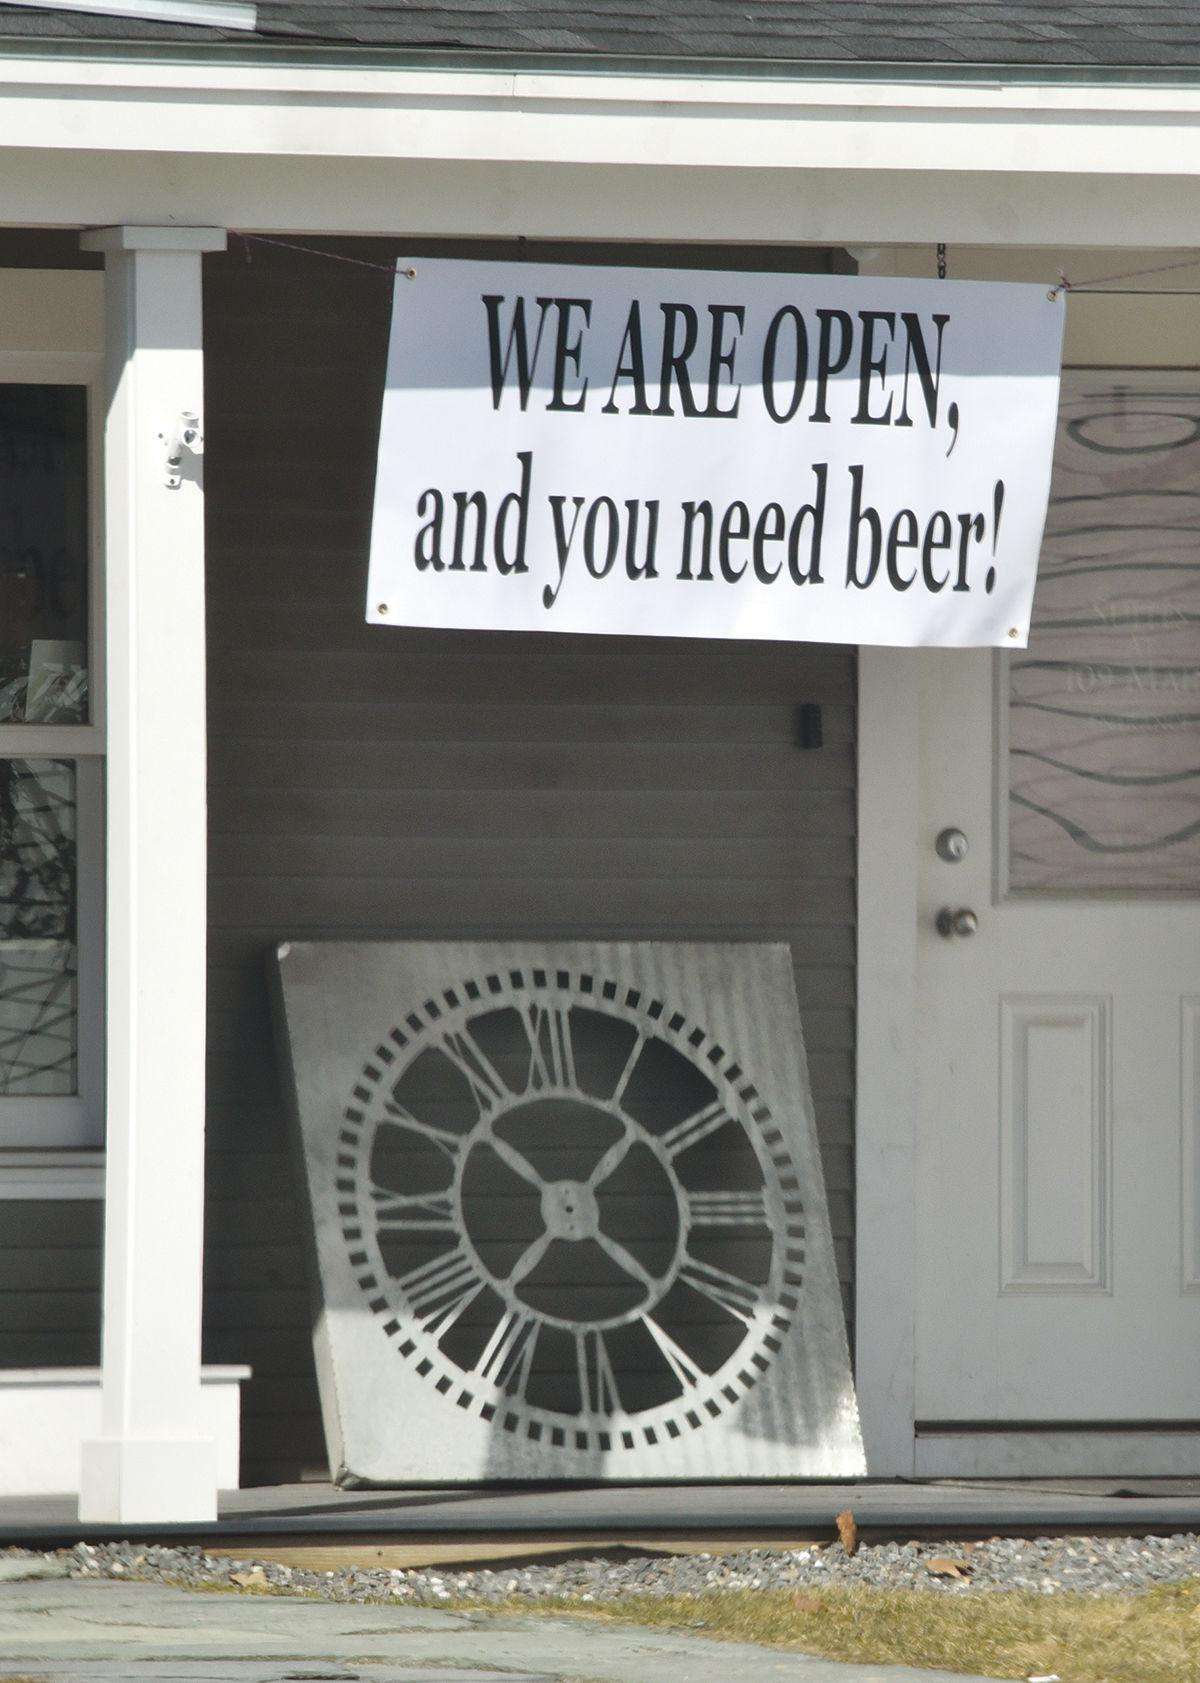 We are open, an you need beer!